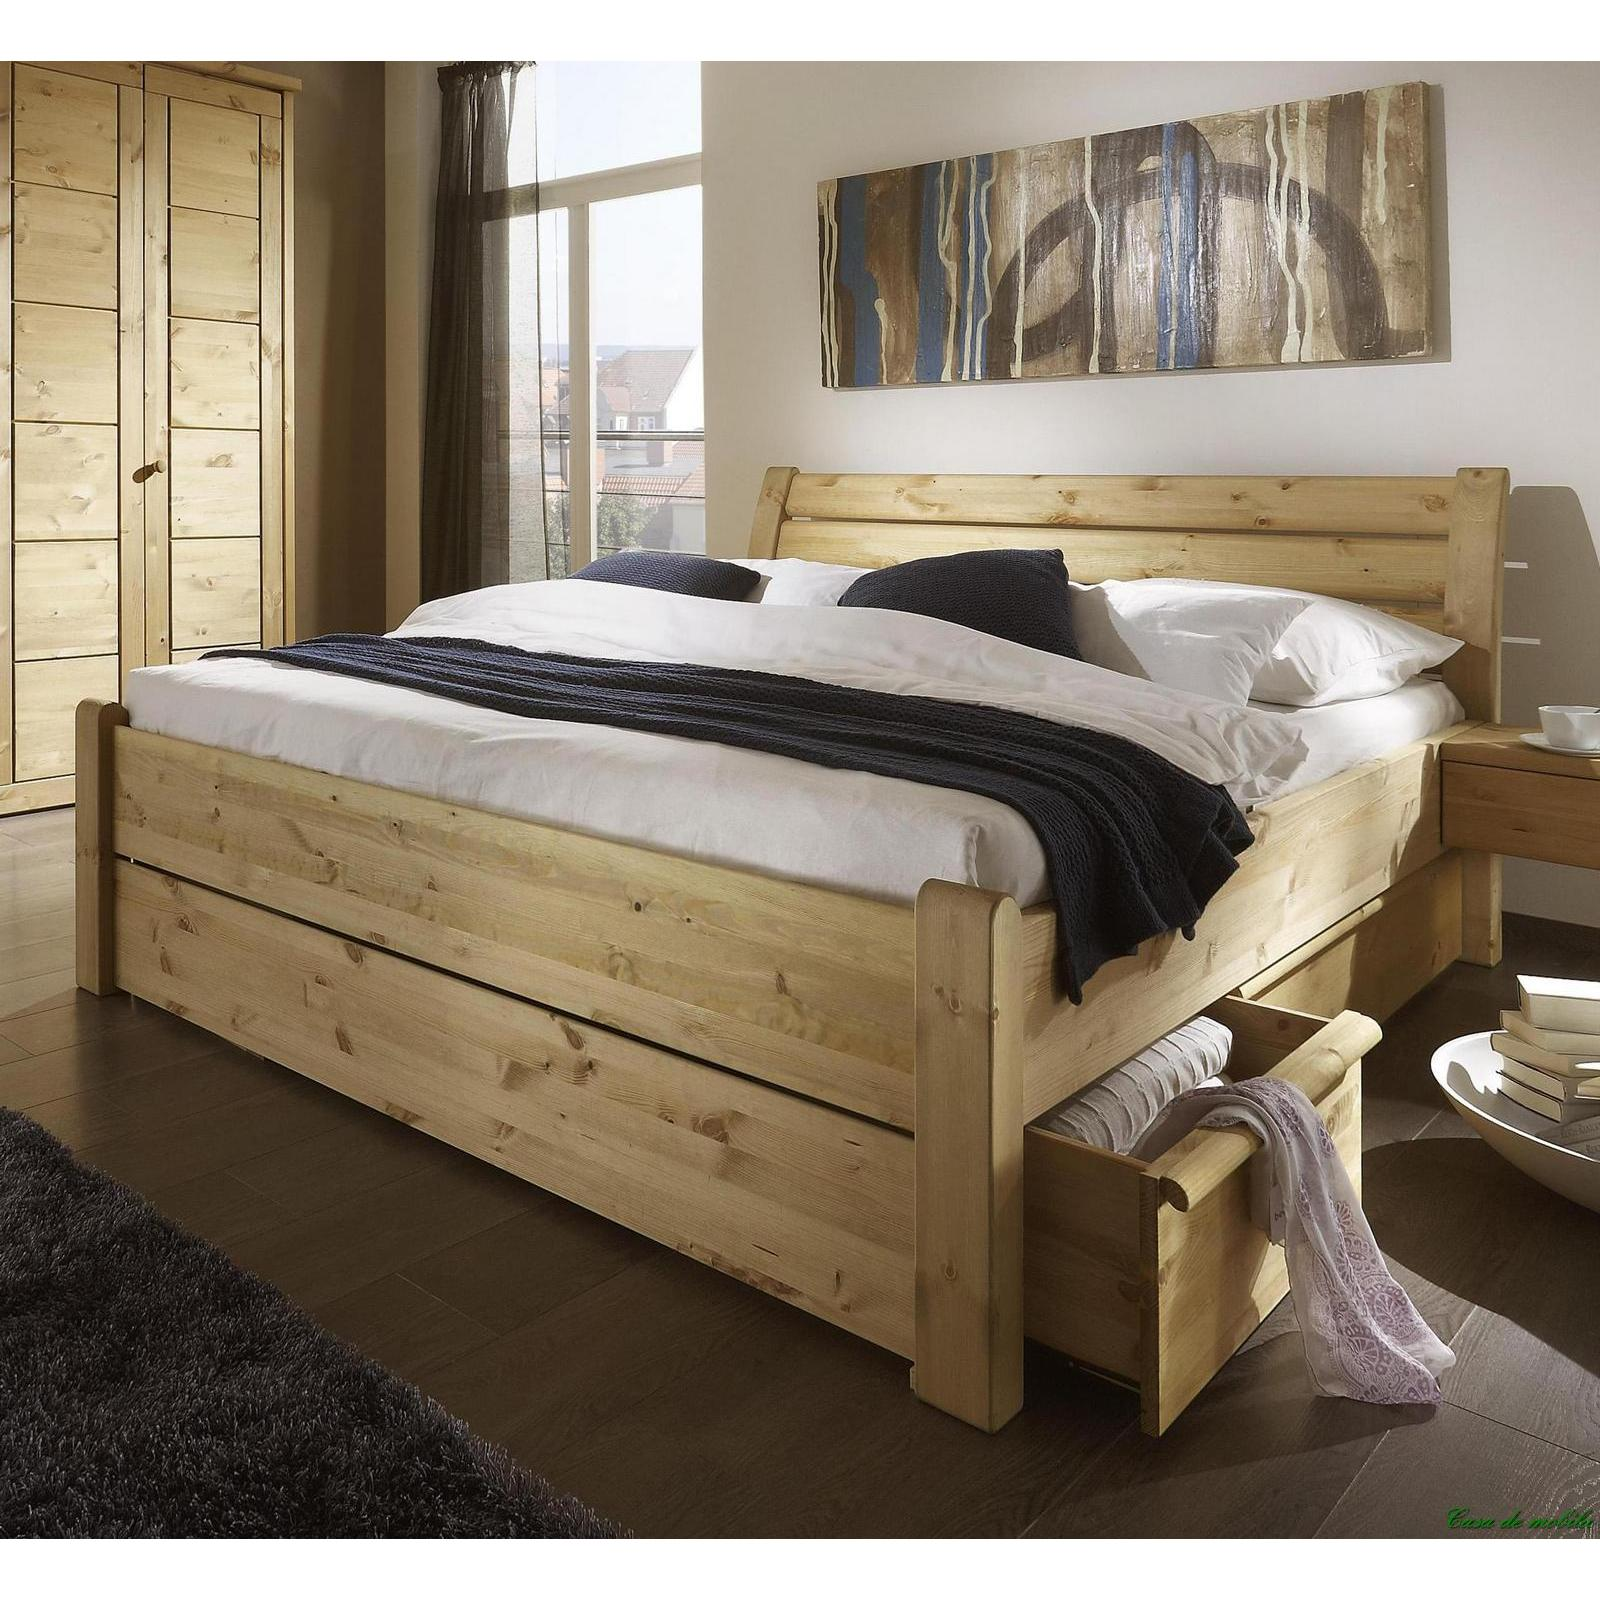 funktionsbett kiefer gelaugt wanderfreunde hainsacker. Black Bedroom Furniture Sets. Home Design Ideas